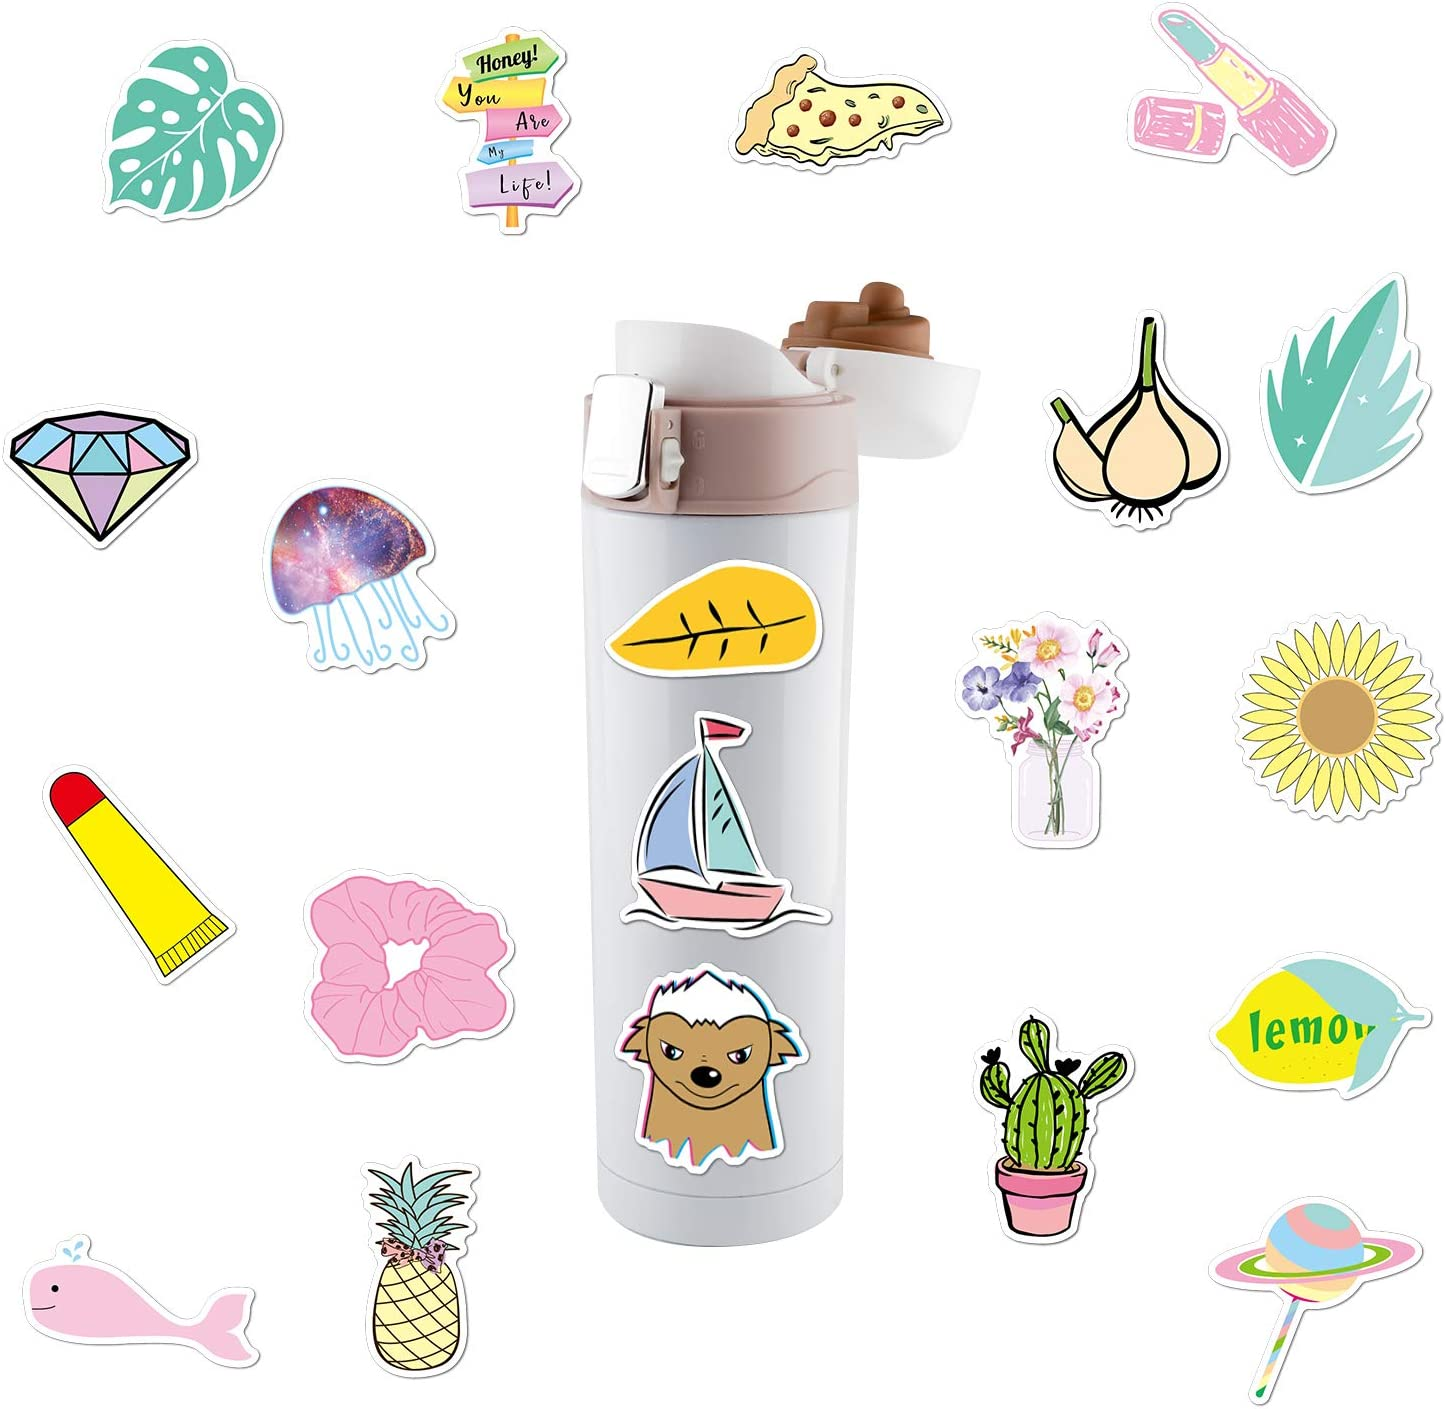 FEPITO 216Pcs Water Bottle Stickers Waterproof Graffiti Sticker Decals Vinyl Cute Stickers for Laptop Skateboard Car Travel Suitcase Decoration Motorcycle Phone Bicycle